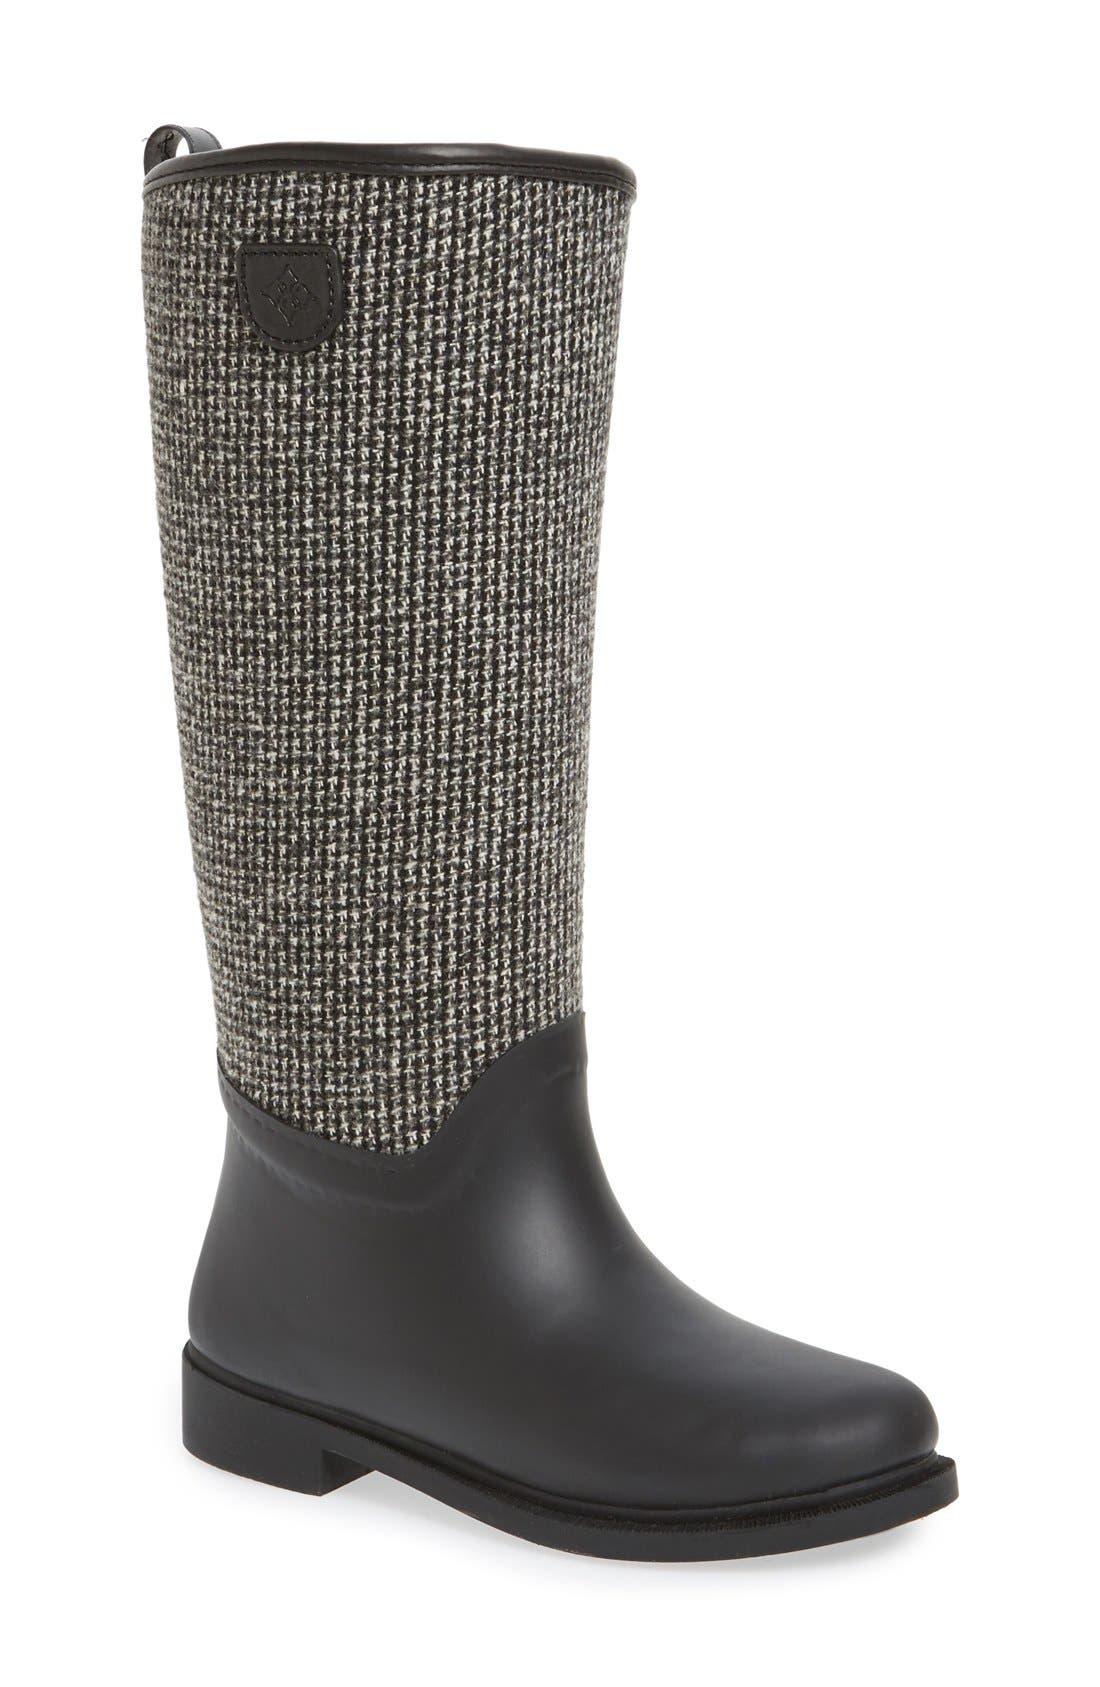 Cardiff Tweed Knee High Waterproof Rain Boot, Main, color, BLACK